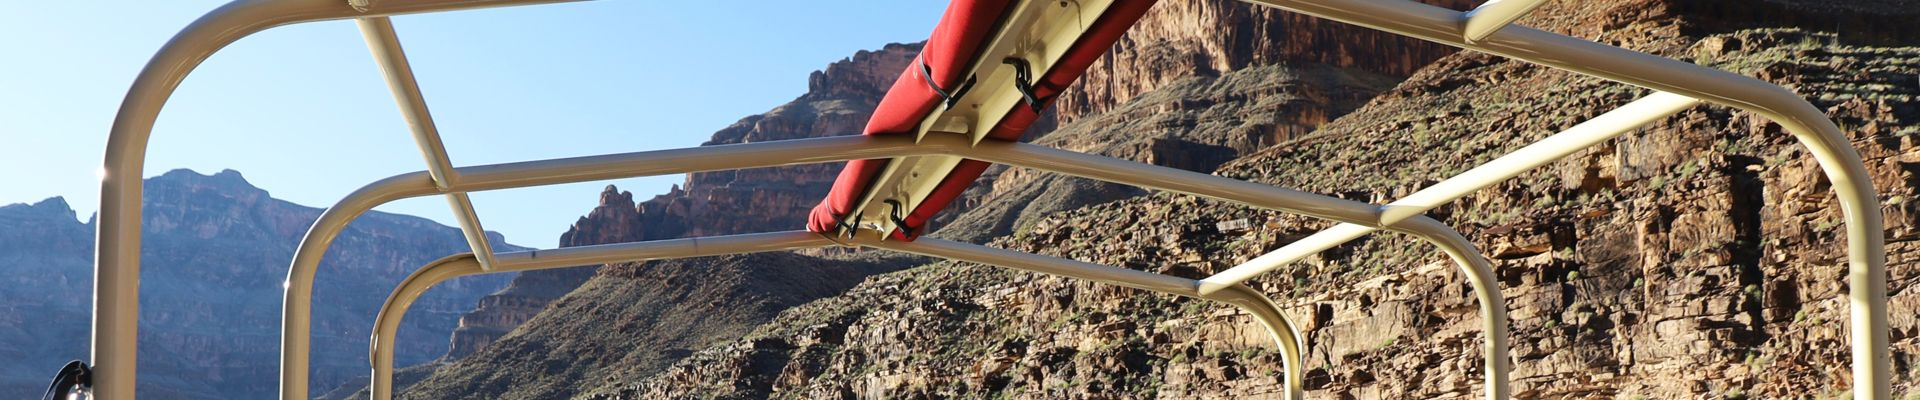 View of the Grand Canyon from the Hualapai River Runner Pontoon Boat